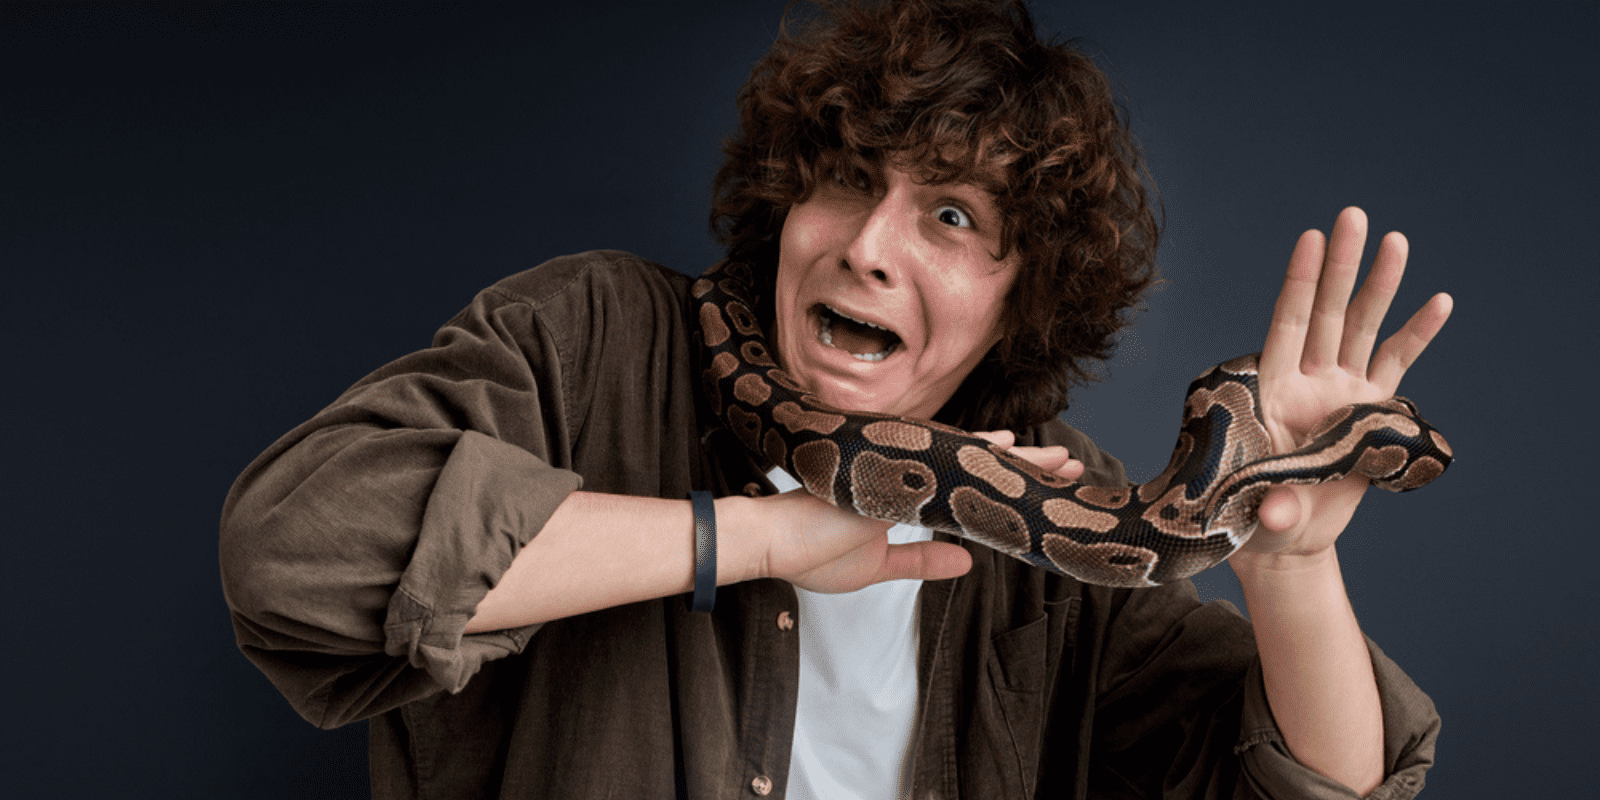 snake around the neck of a scared man